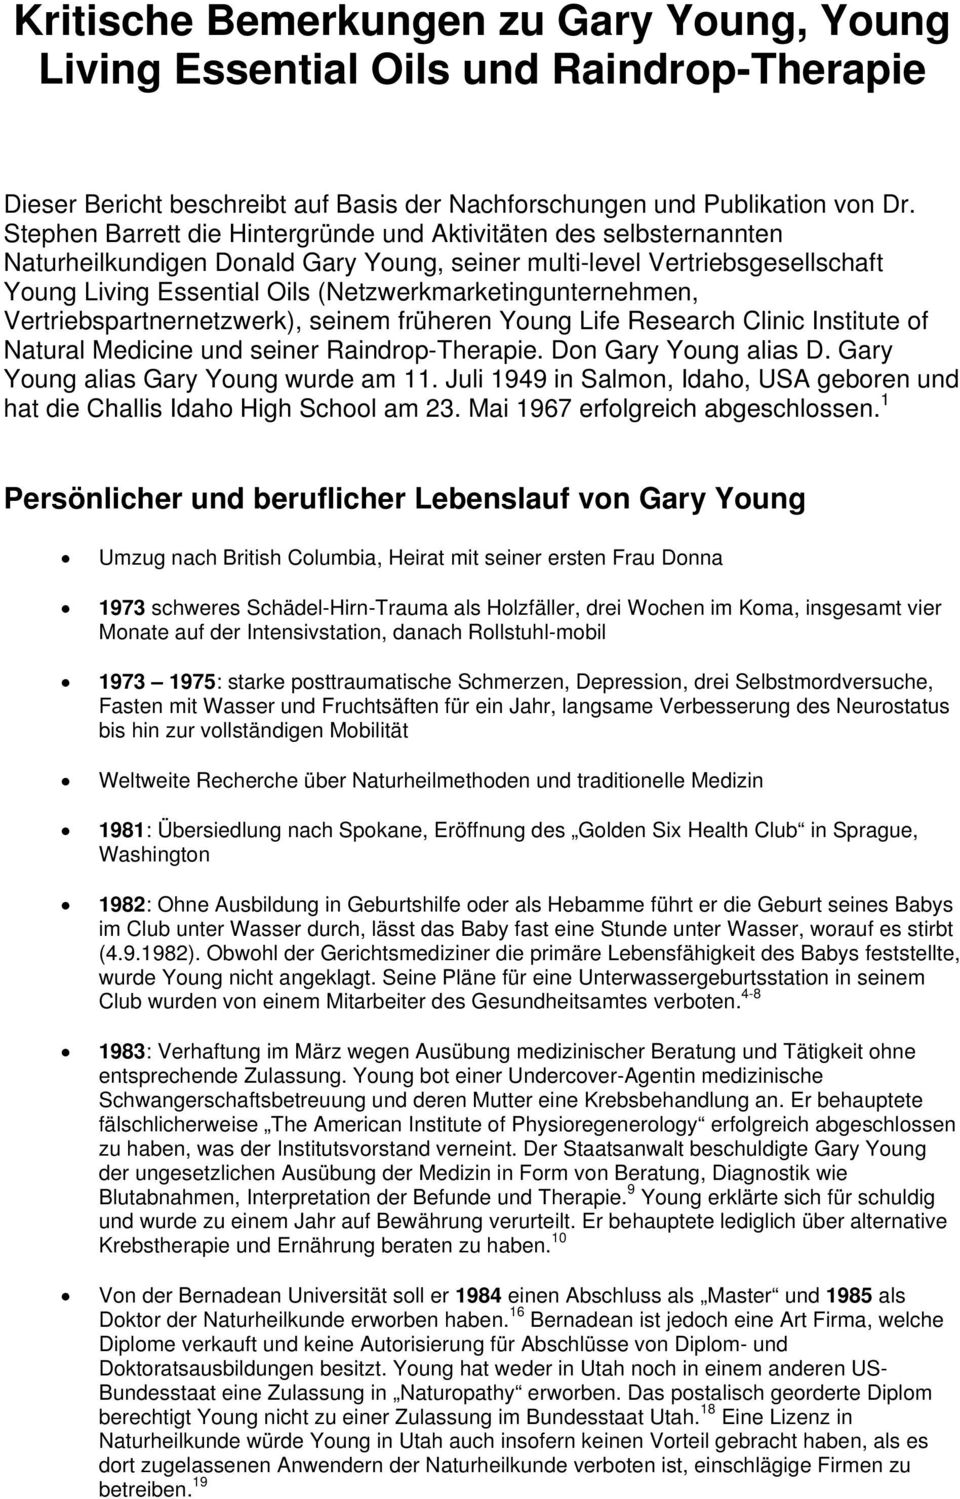 (Netzwerkmarketingunternehmen, Vertriebspartnernetzwerk), seinem früheren Young Life Research Clinic Institute of Natural Medicine und seiner Raindrop-Therapie. Don Gary Young alias D.